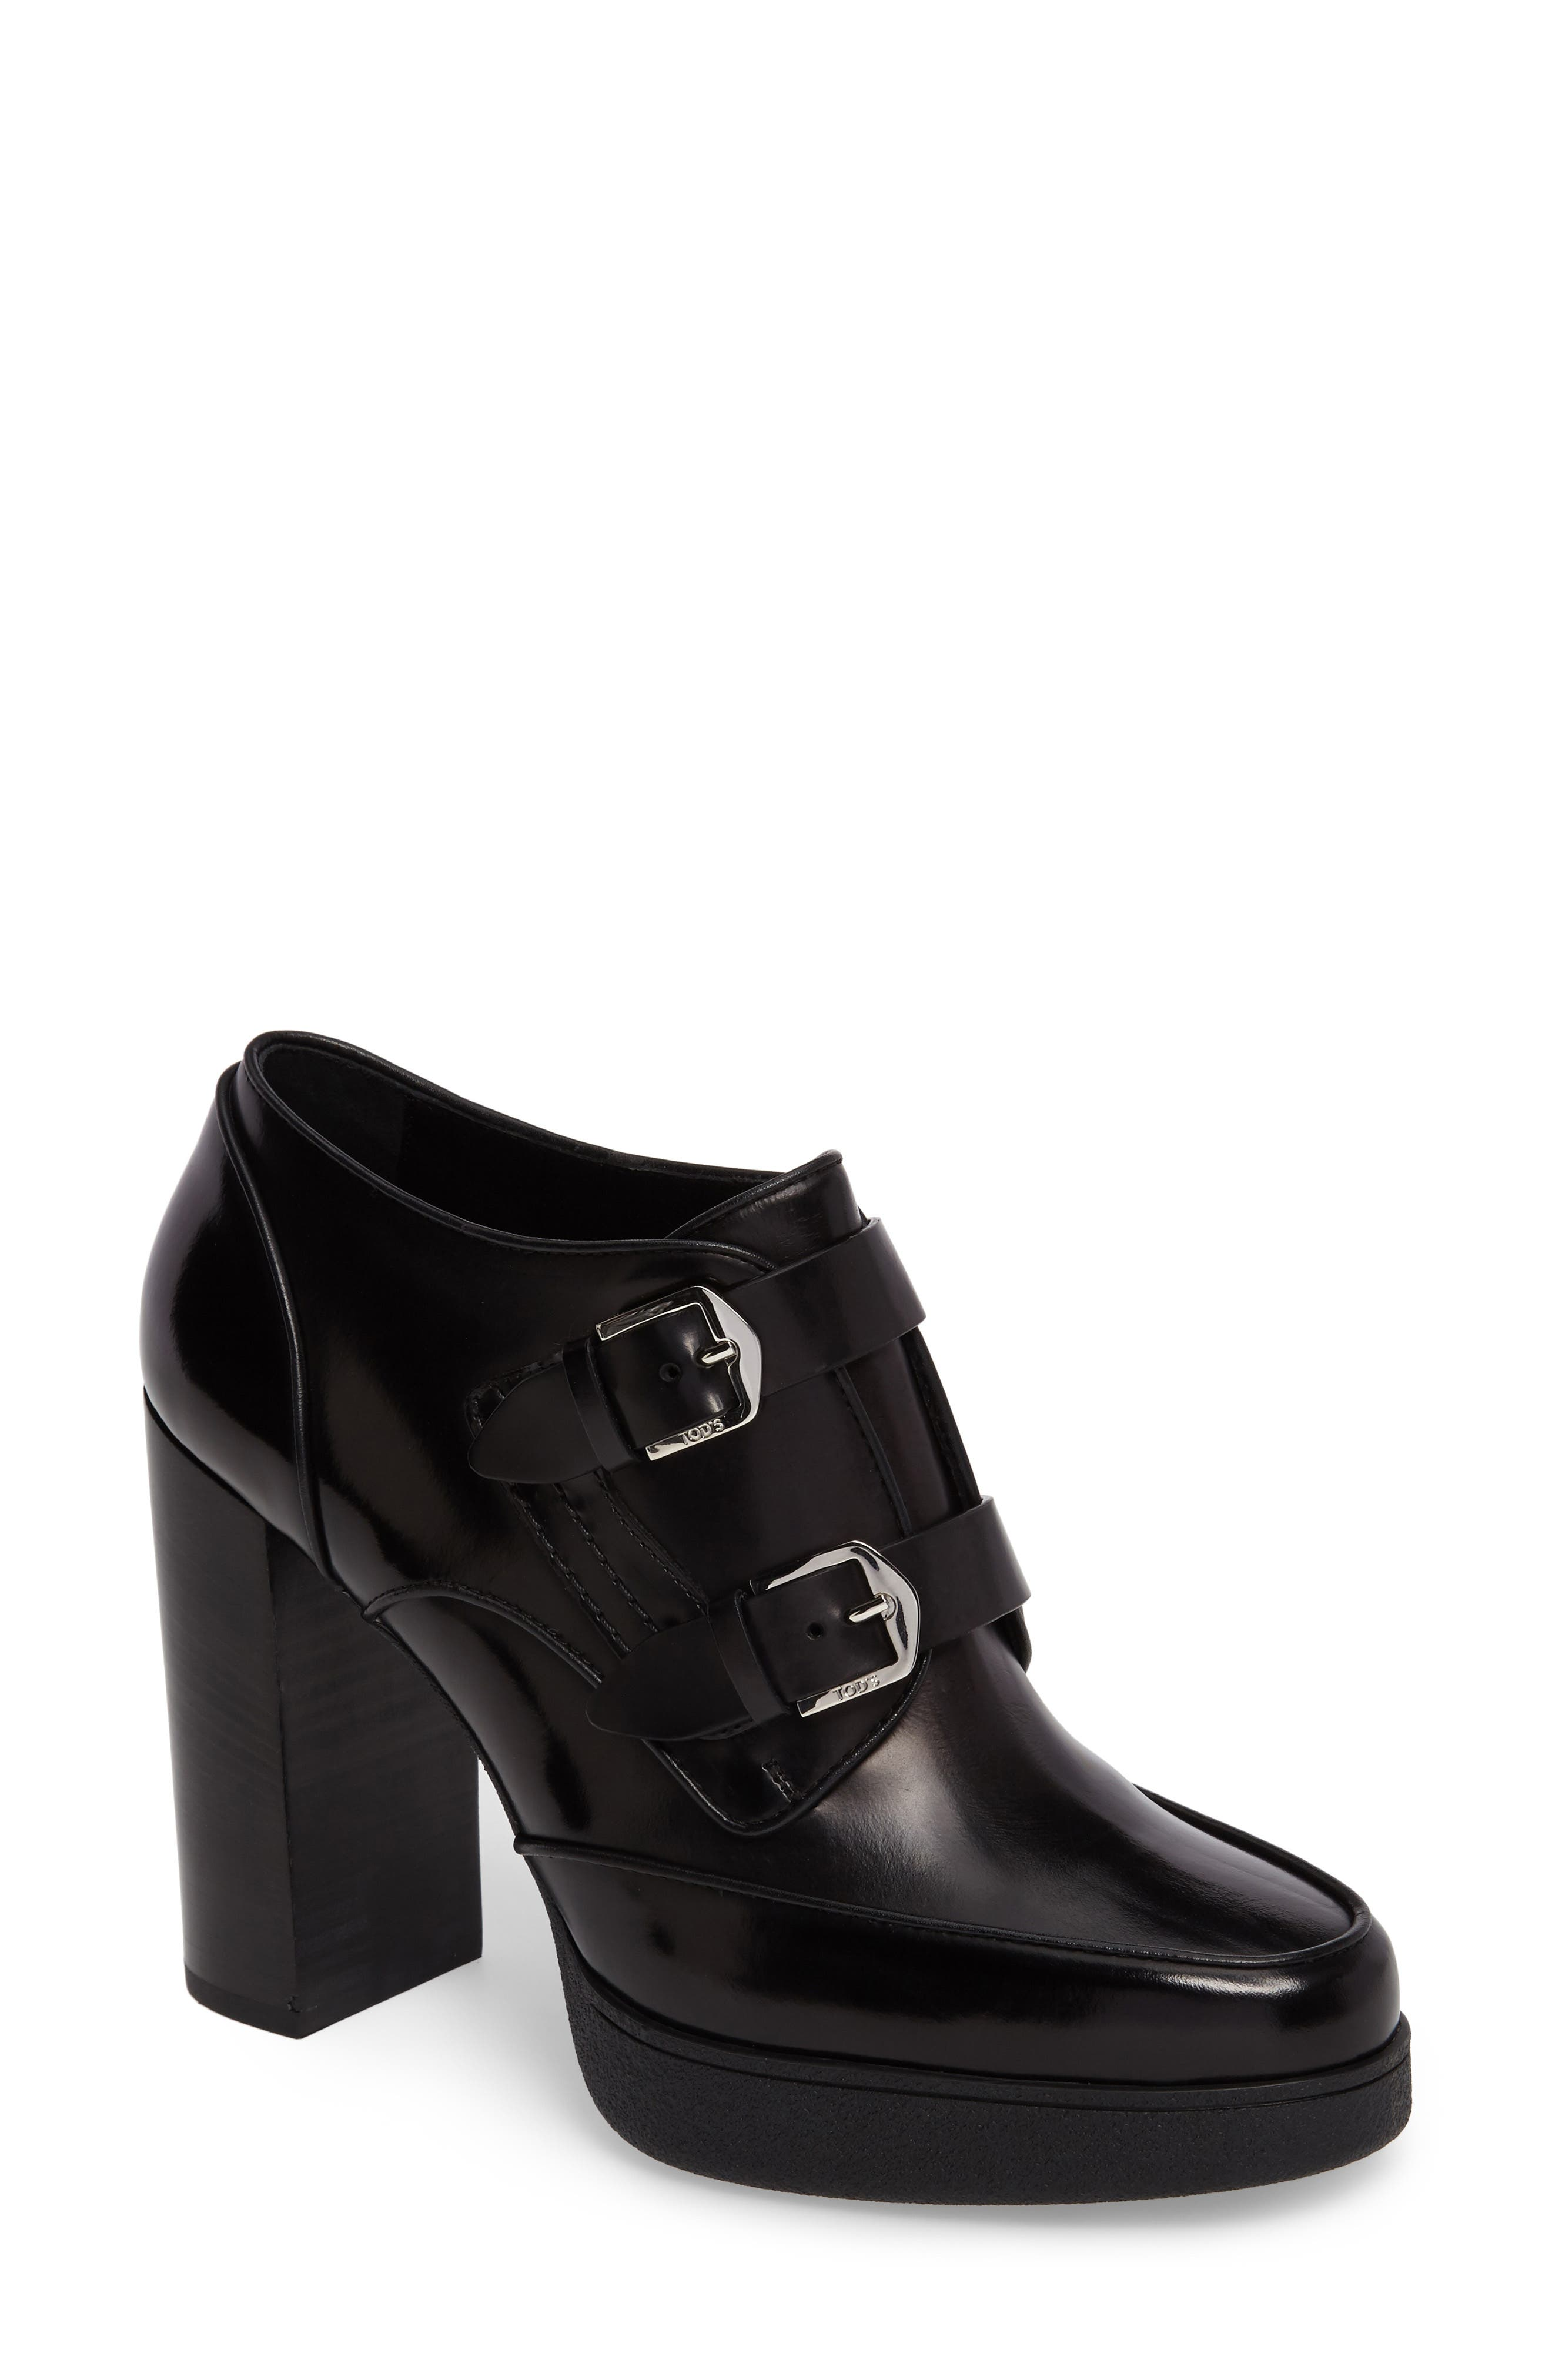 TODS Penny Double Monk Platform Pump